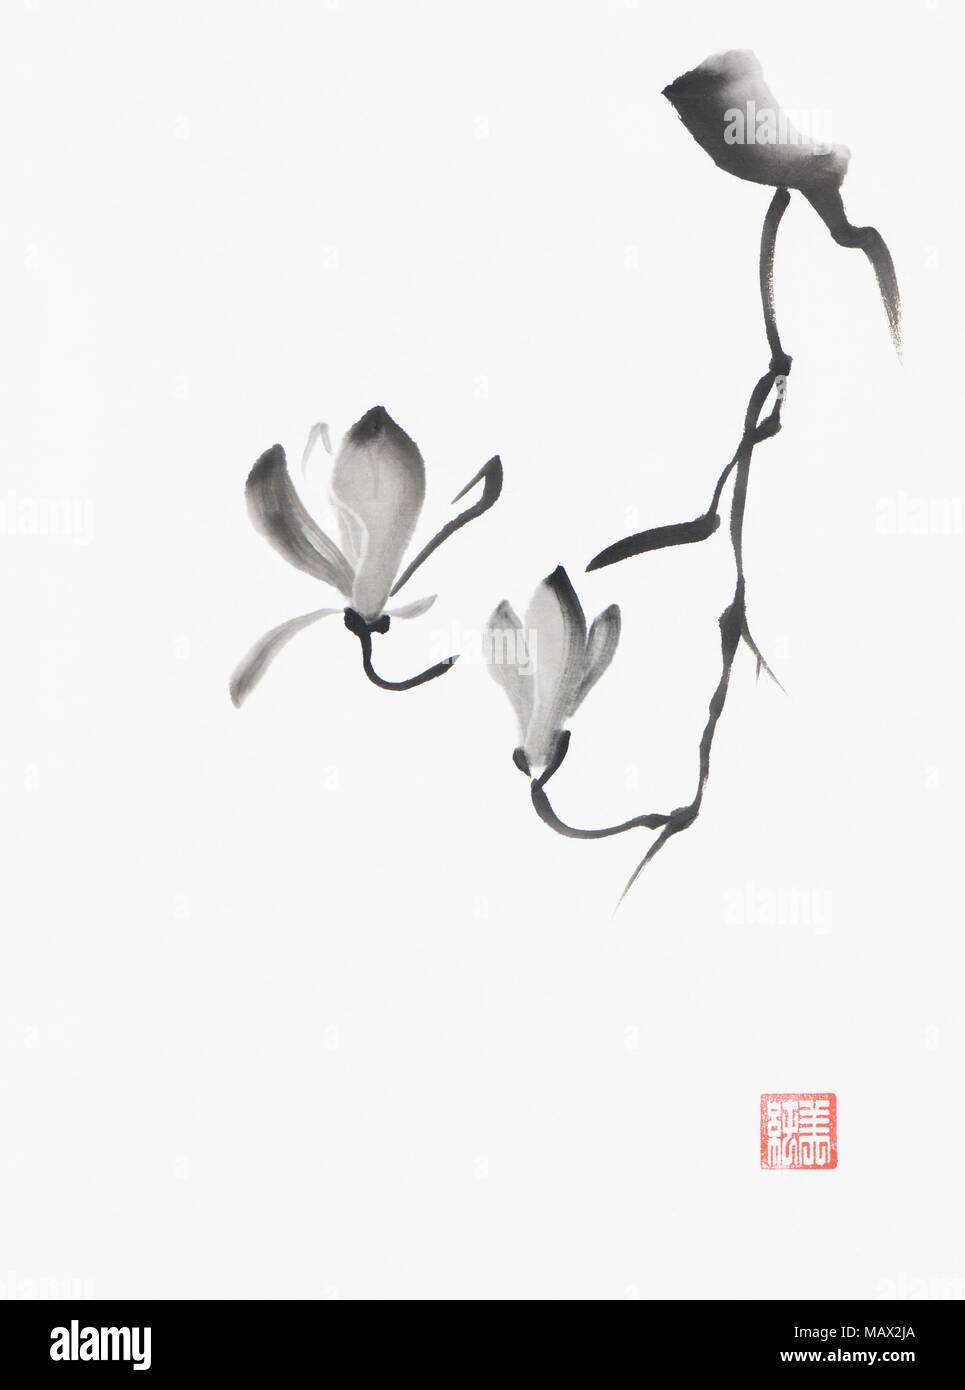 Beautiful black and white magnolia branch with two flowers artistic oriental style illustration, Japanese Zen Sumi-e black ink painting on white rice  - Stock Image